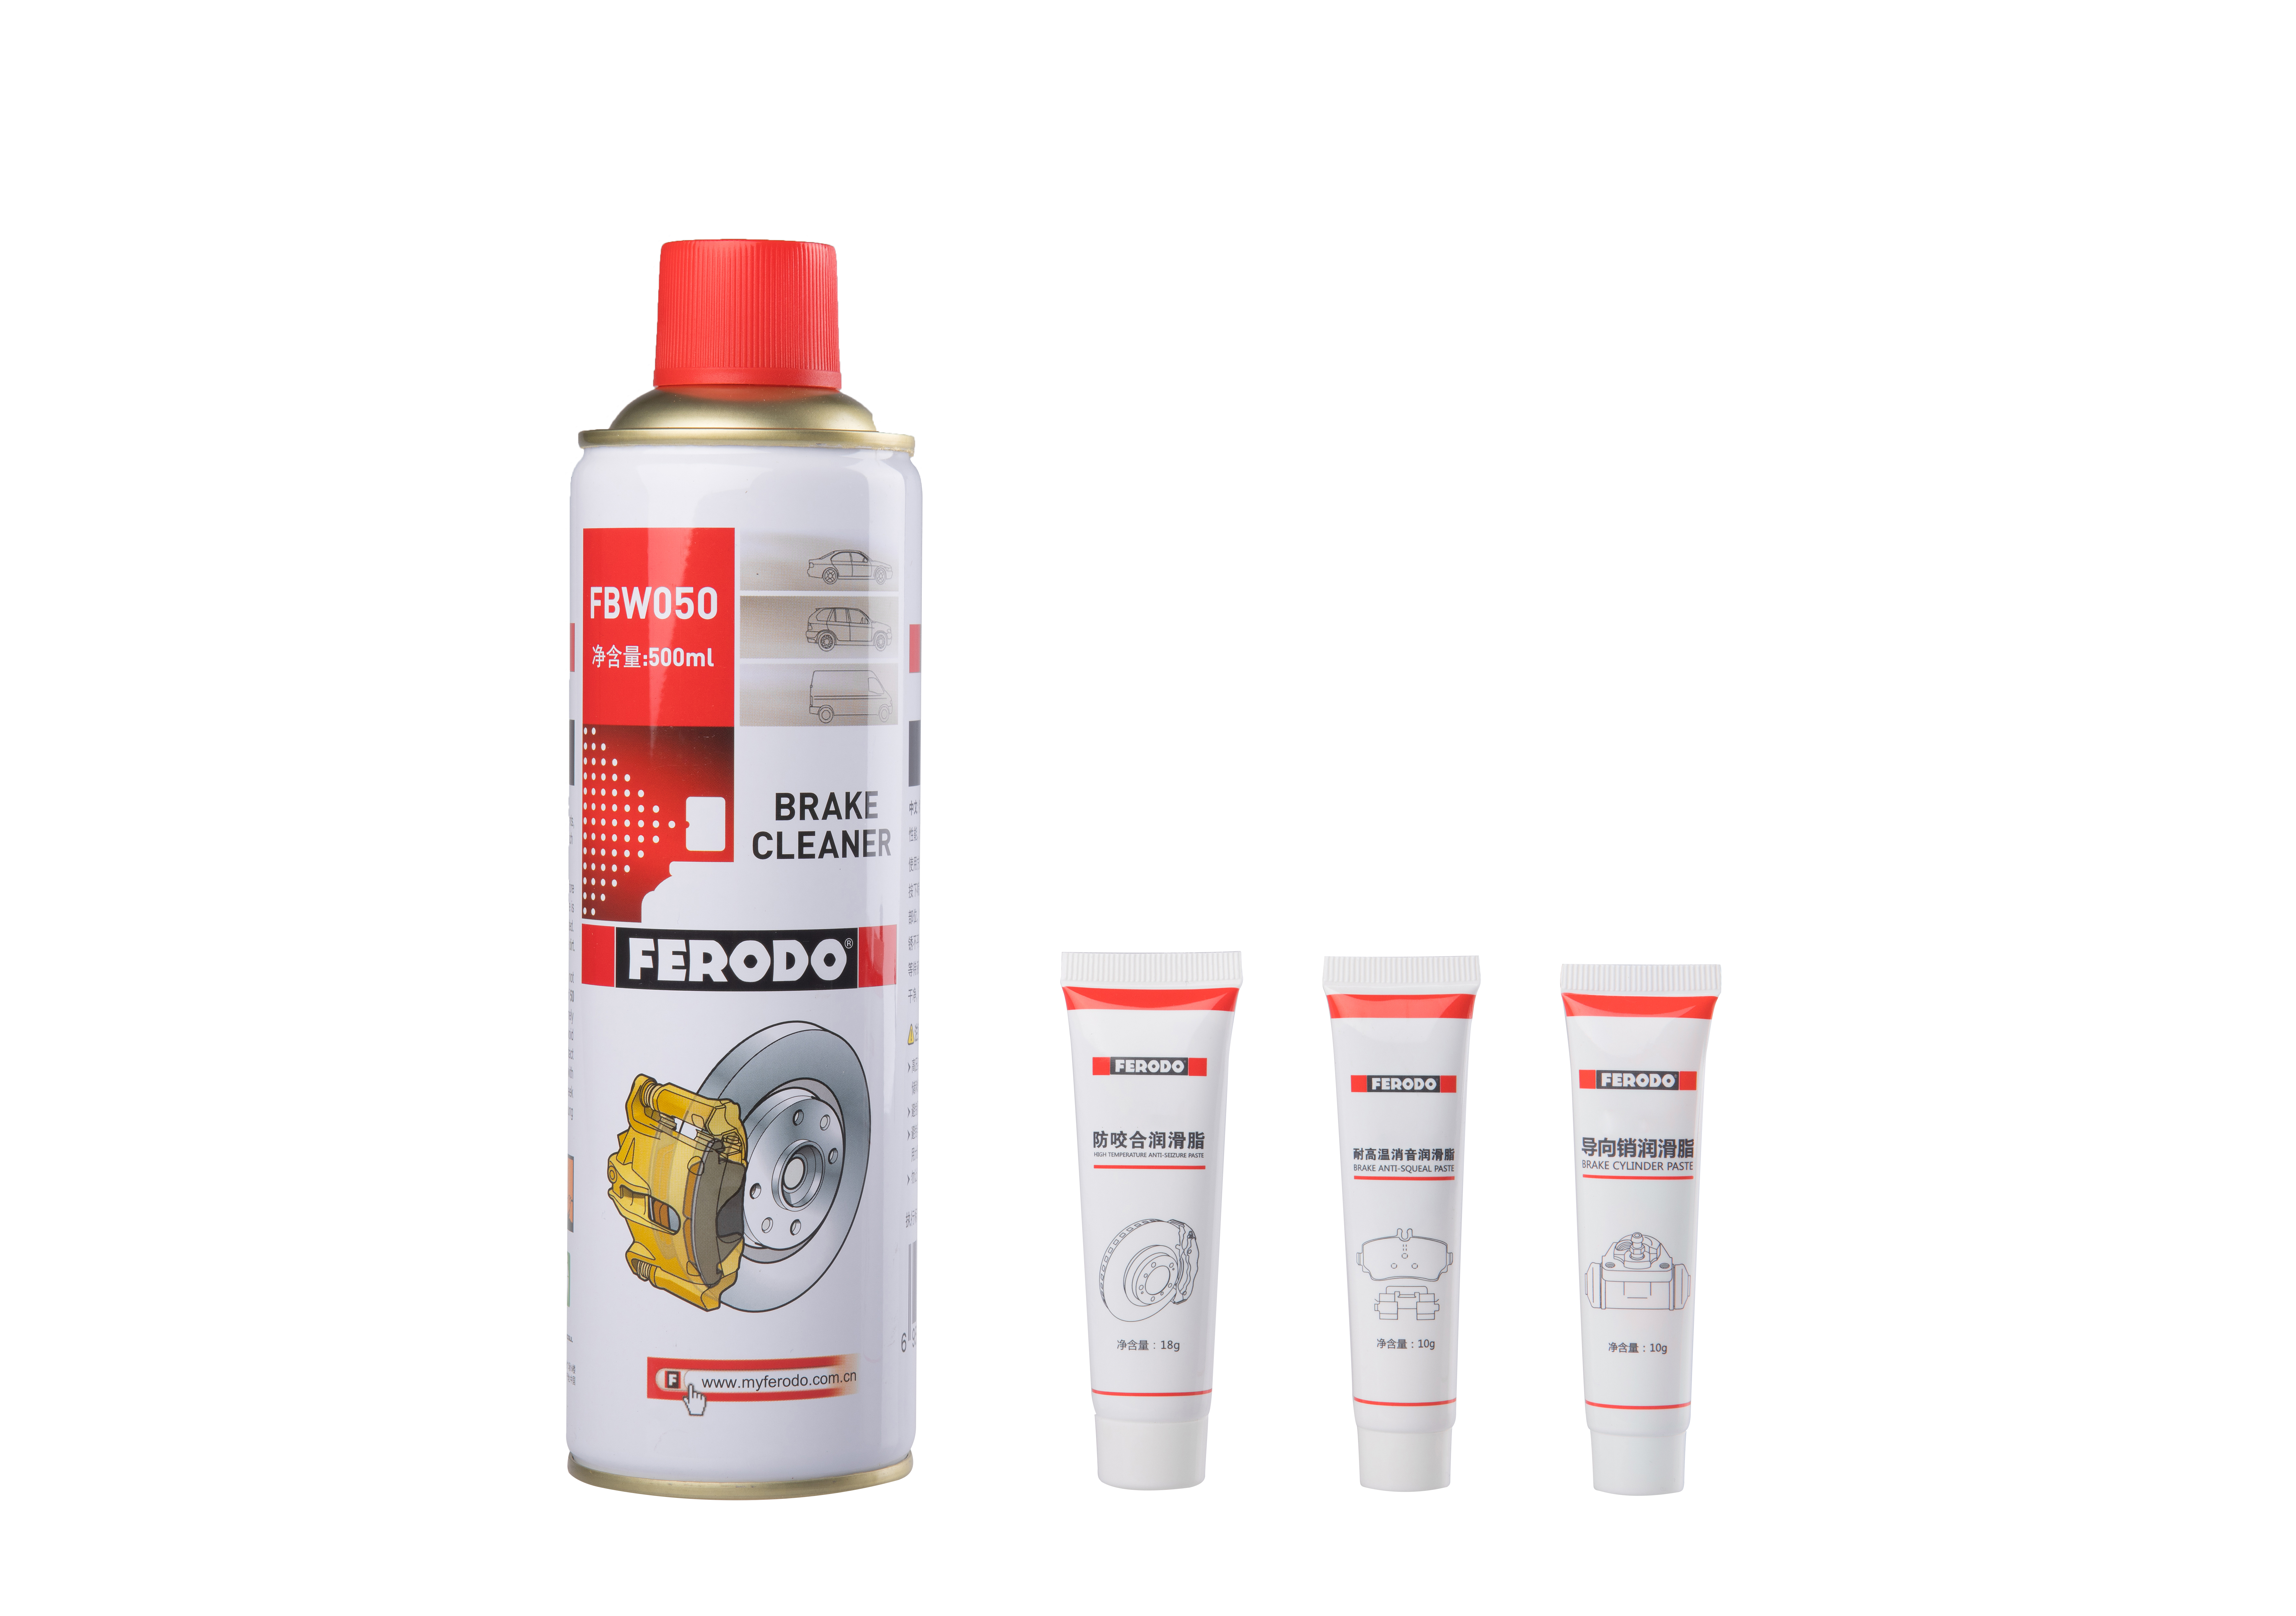 ferodo cleaner kits